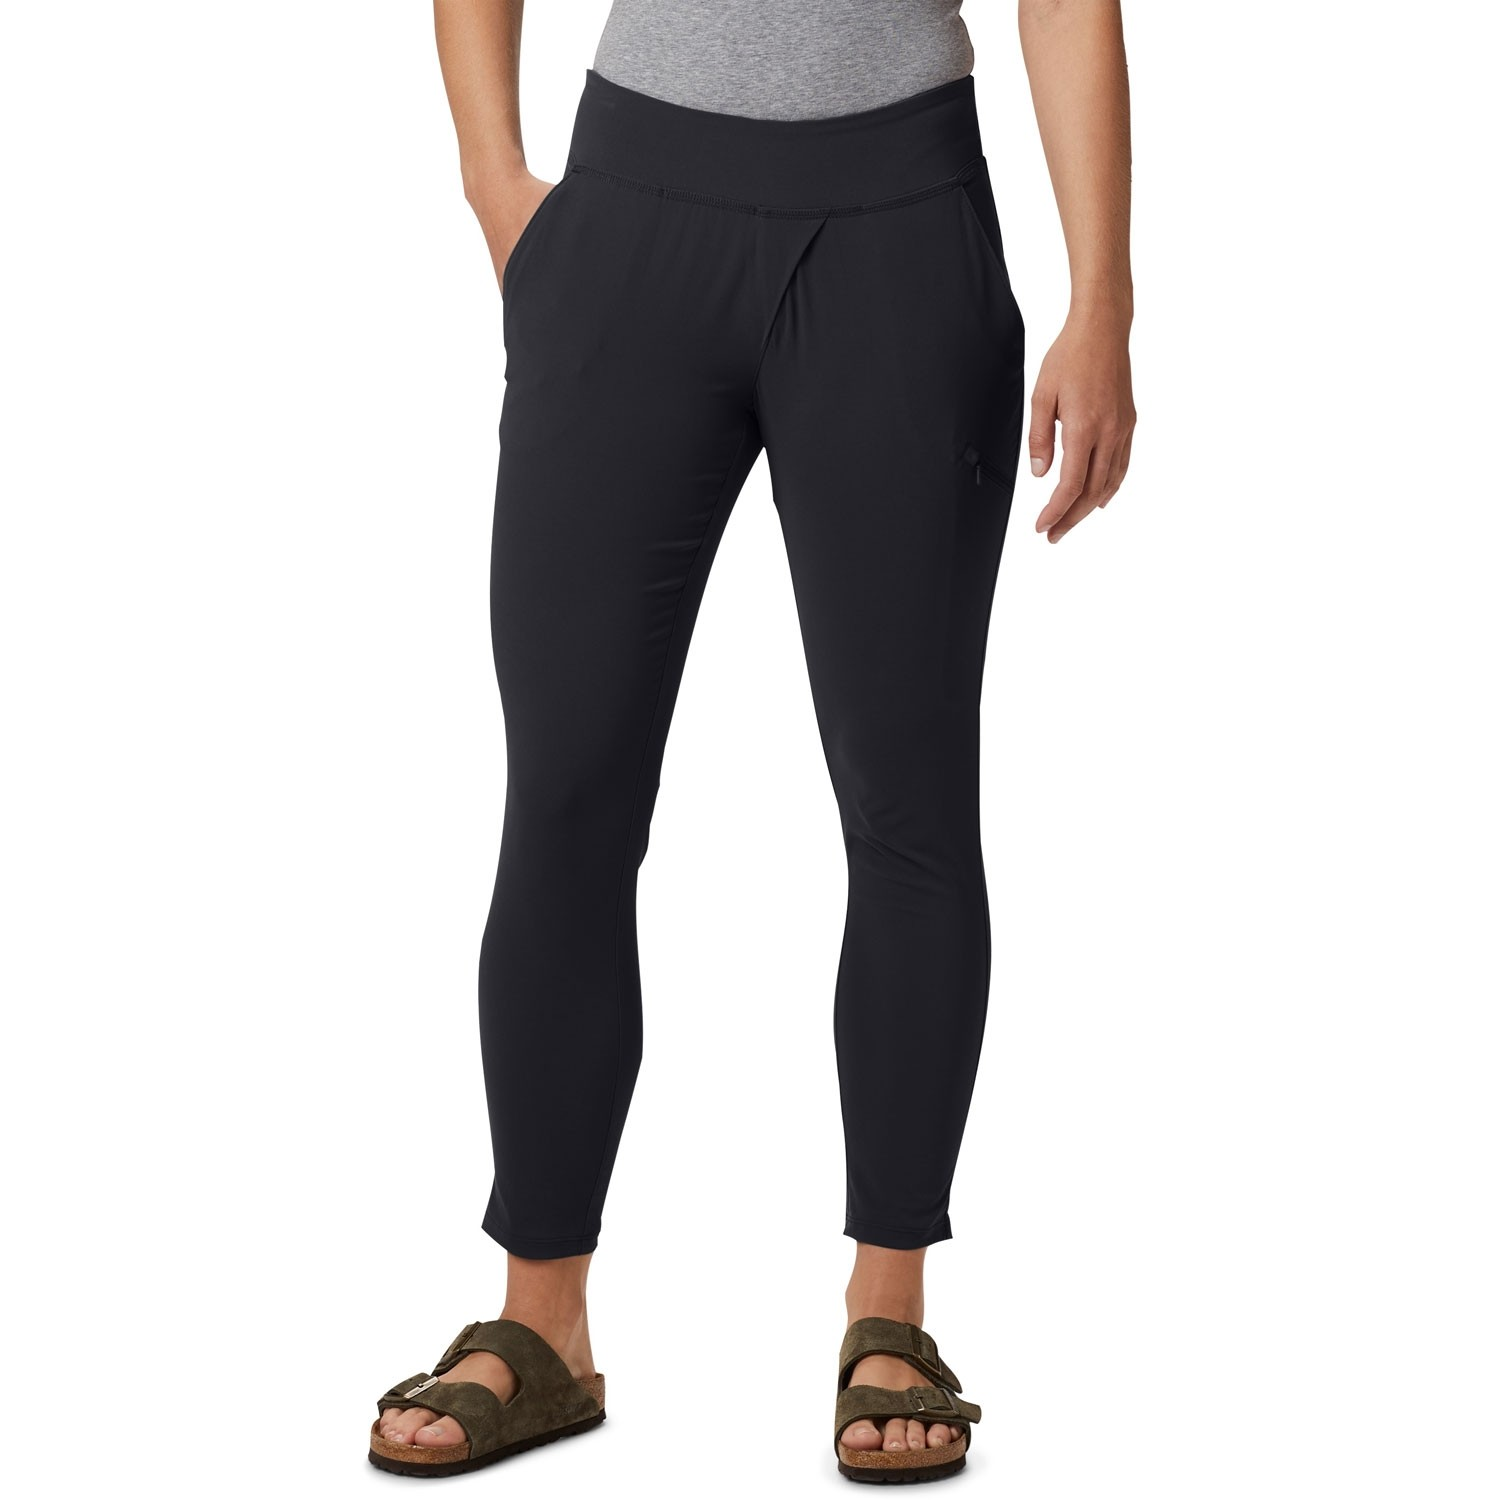 Mountain Hardwear Dynama Ankle Pants - Black - model front